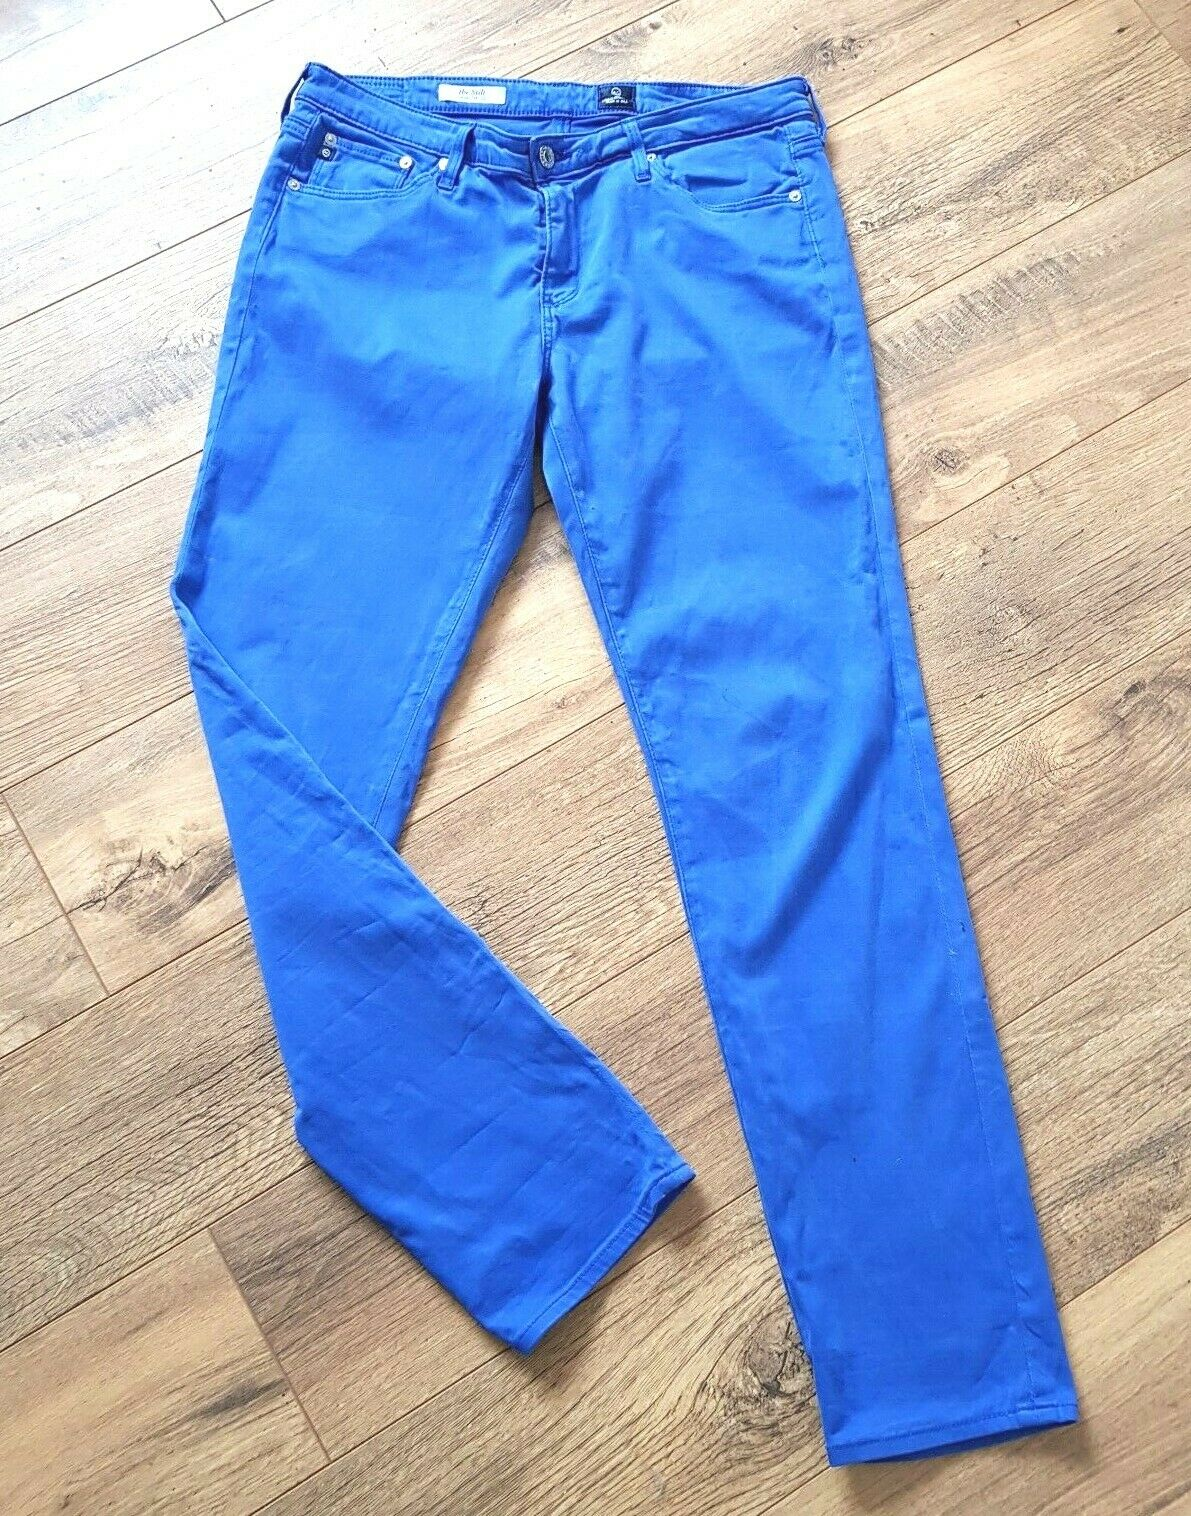 AG ADRIANO goldSCHMIED Stilt Cigarette Jeans Sz 31  Slim Straight Skinny blueE